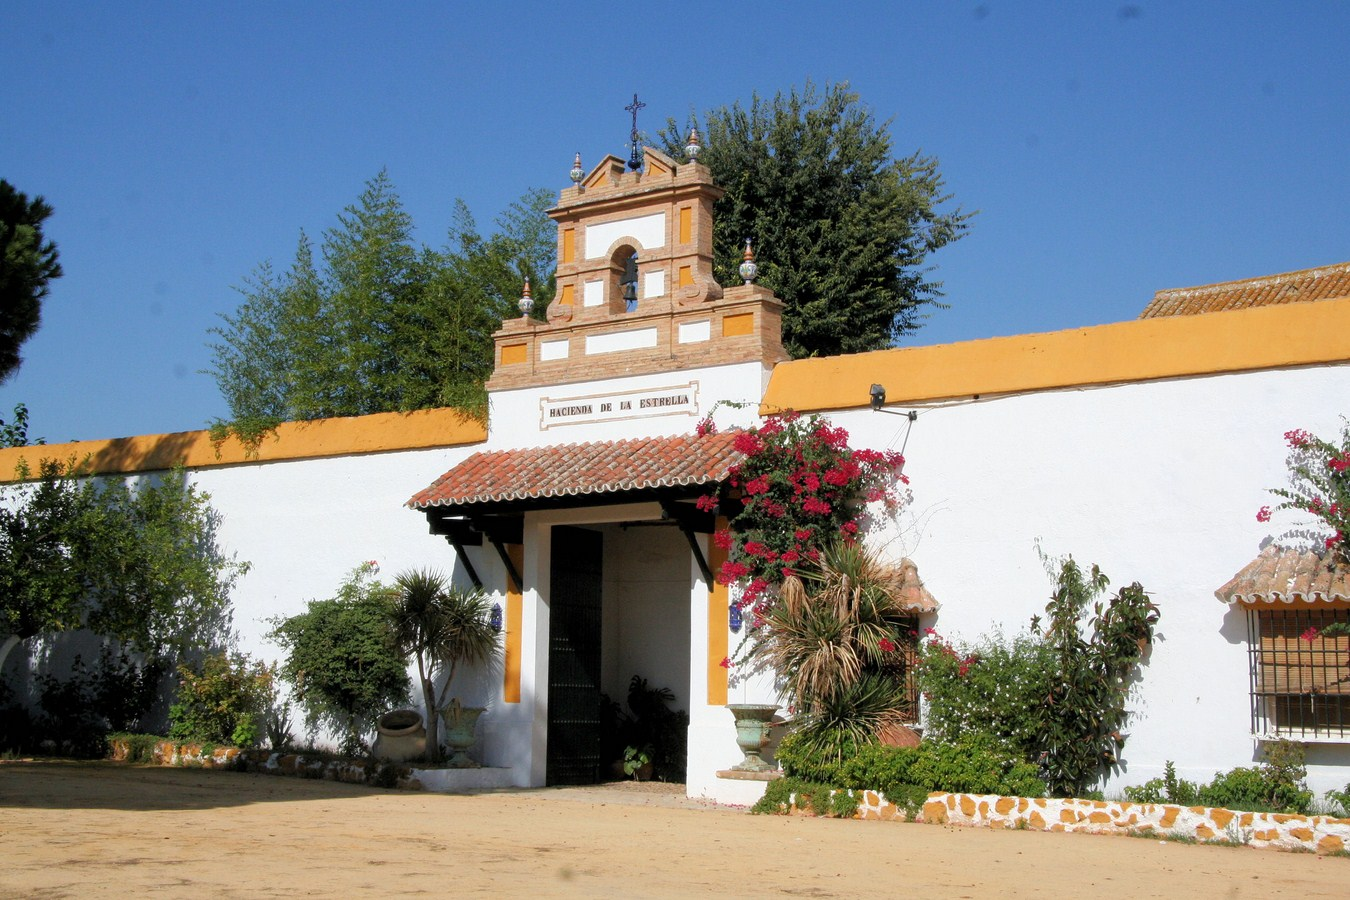 Equestrian property in Andalusia, Spain